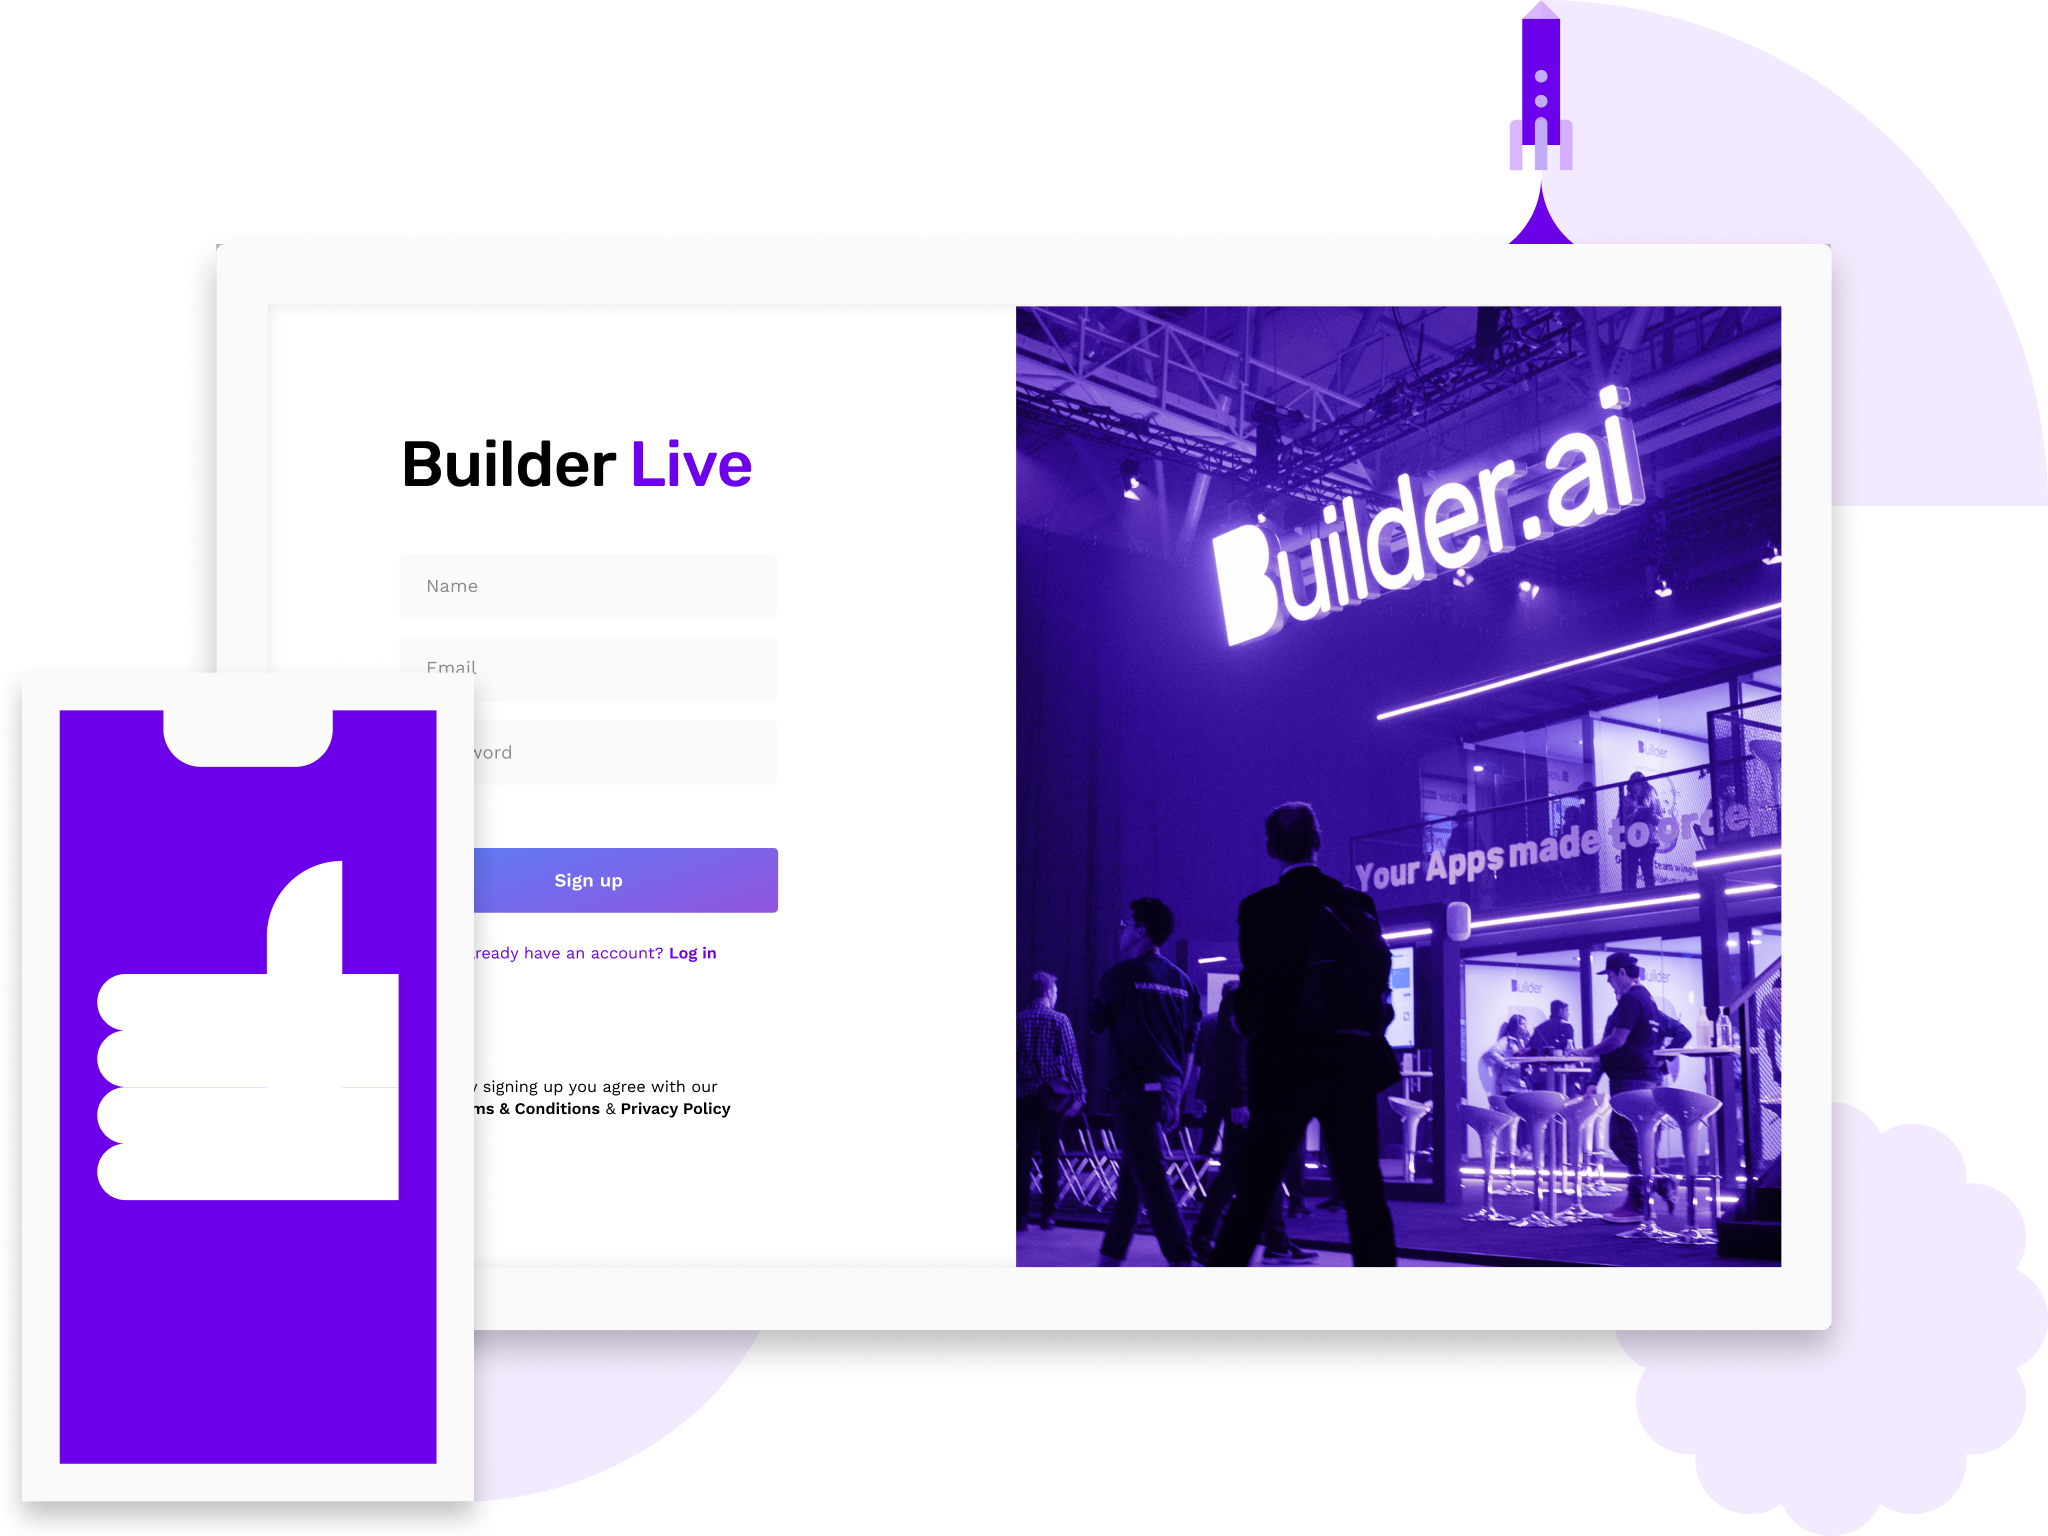 Builder Live with Builder.ai exhibition booth and a contact form